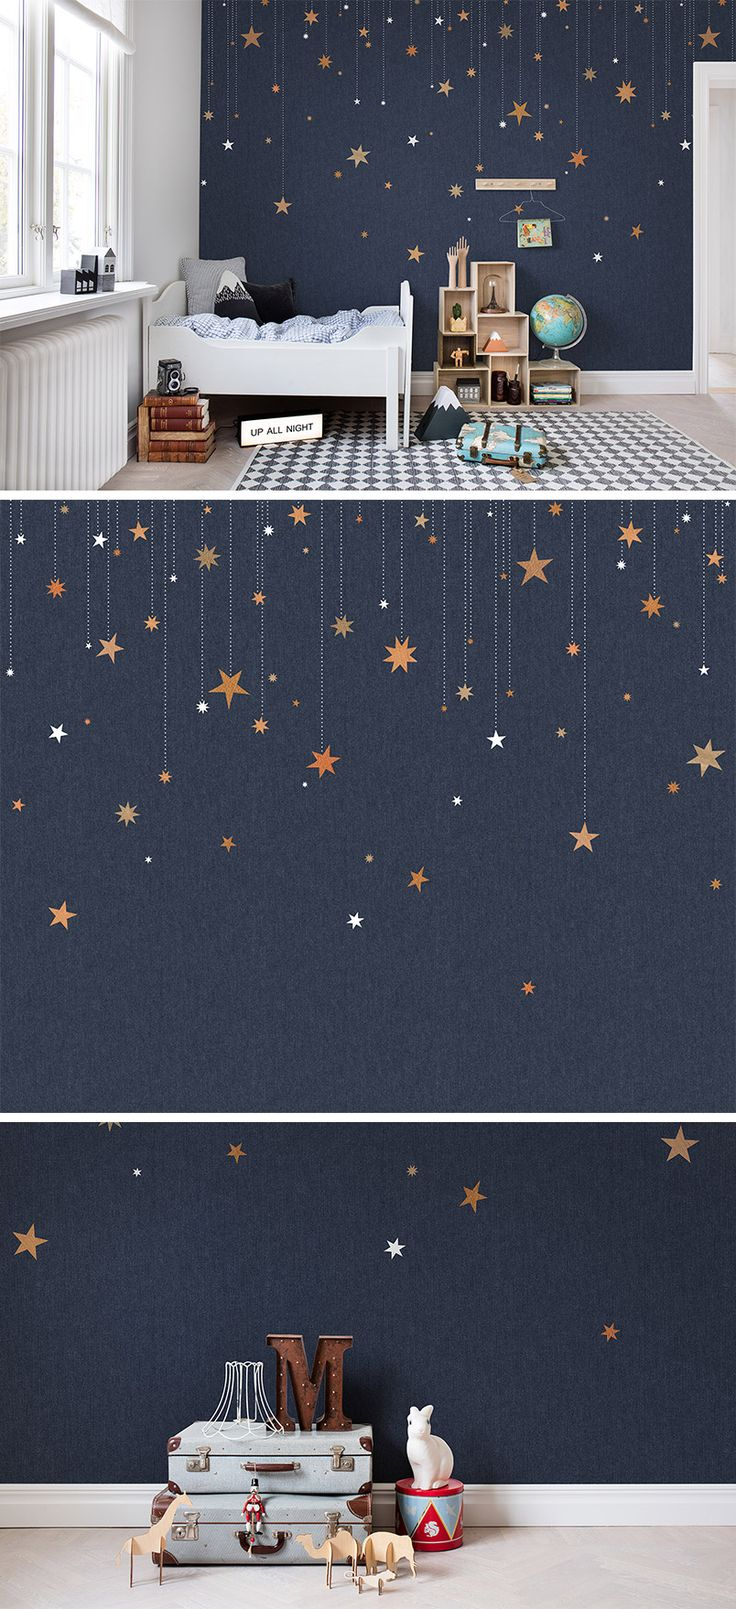 best 10 wall murals for kids ideas on pinterest murals for stargazing nursery wallpaperwallpaper forwall murals